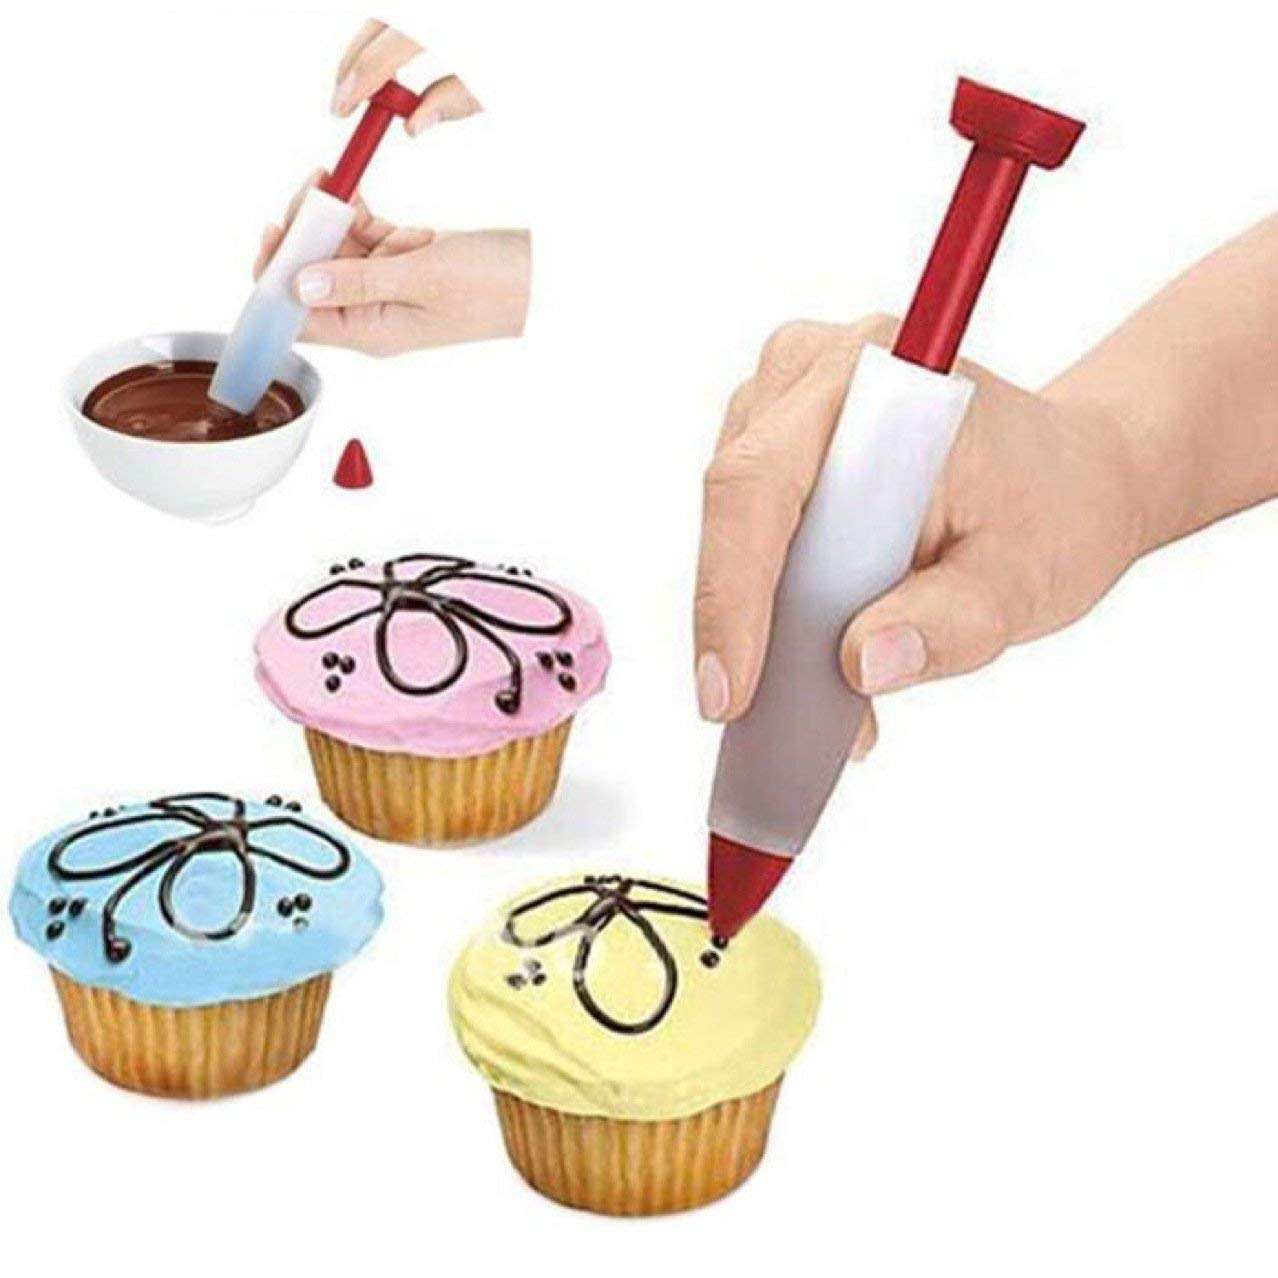 Set of 2, Durable Silicone Decorating Pen/ Chocolate Writting Pen/ Cake Icing Pen/ Cake Decorating Tool